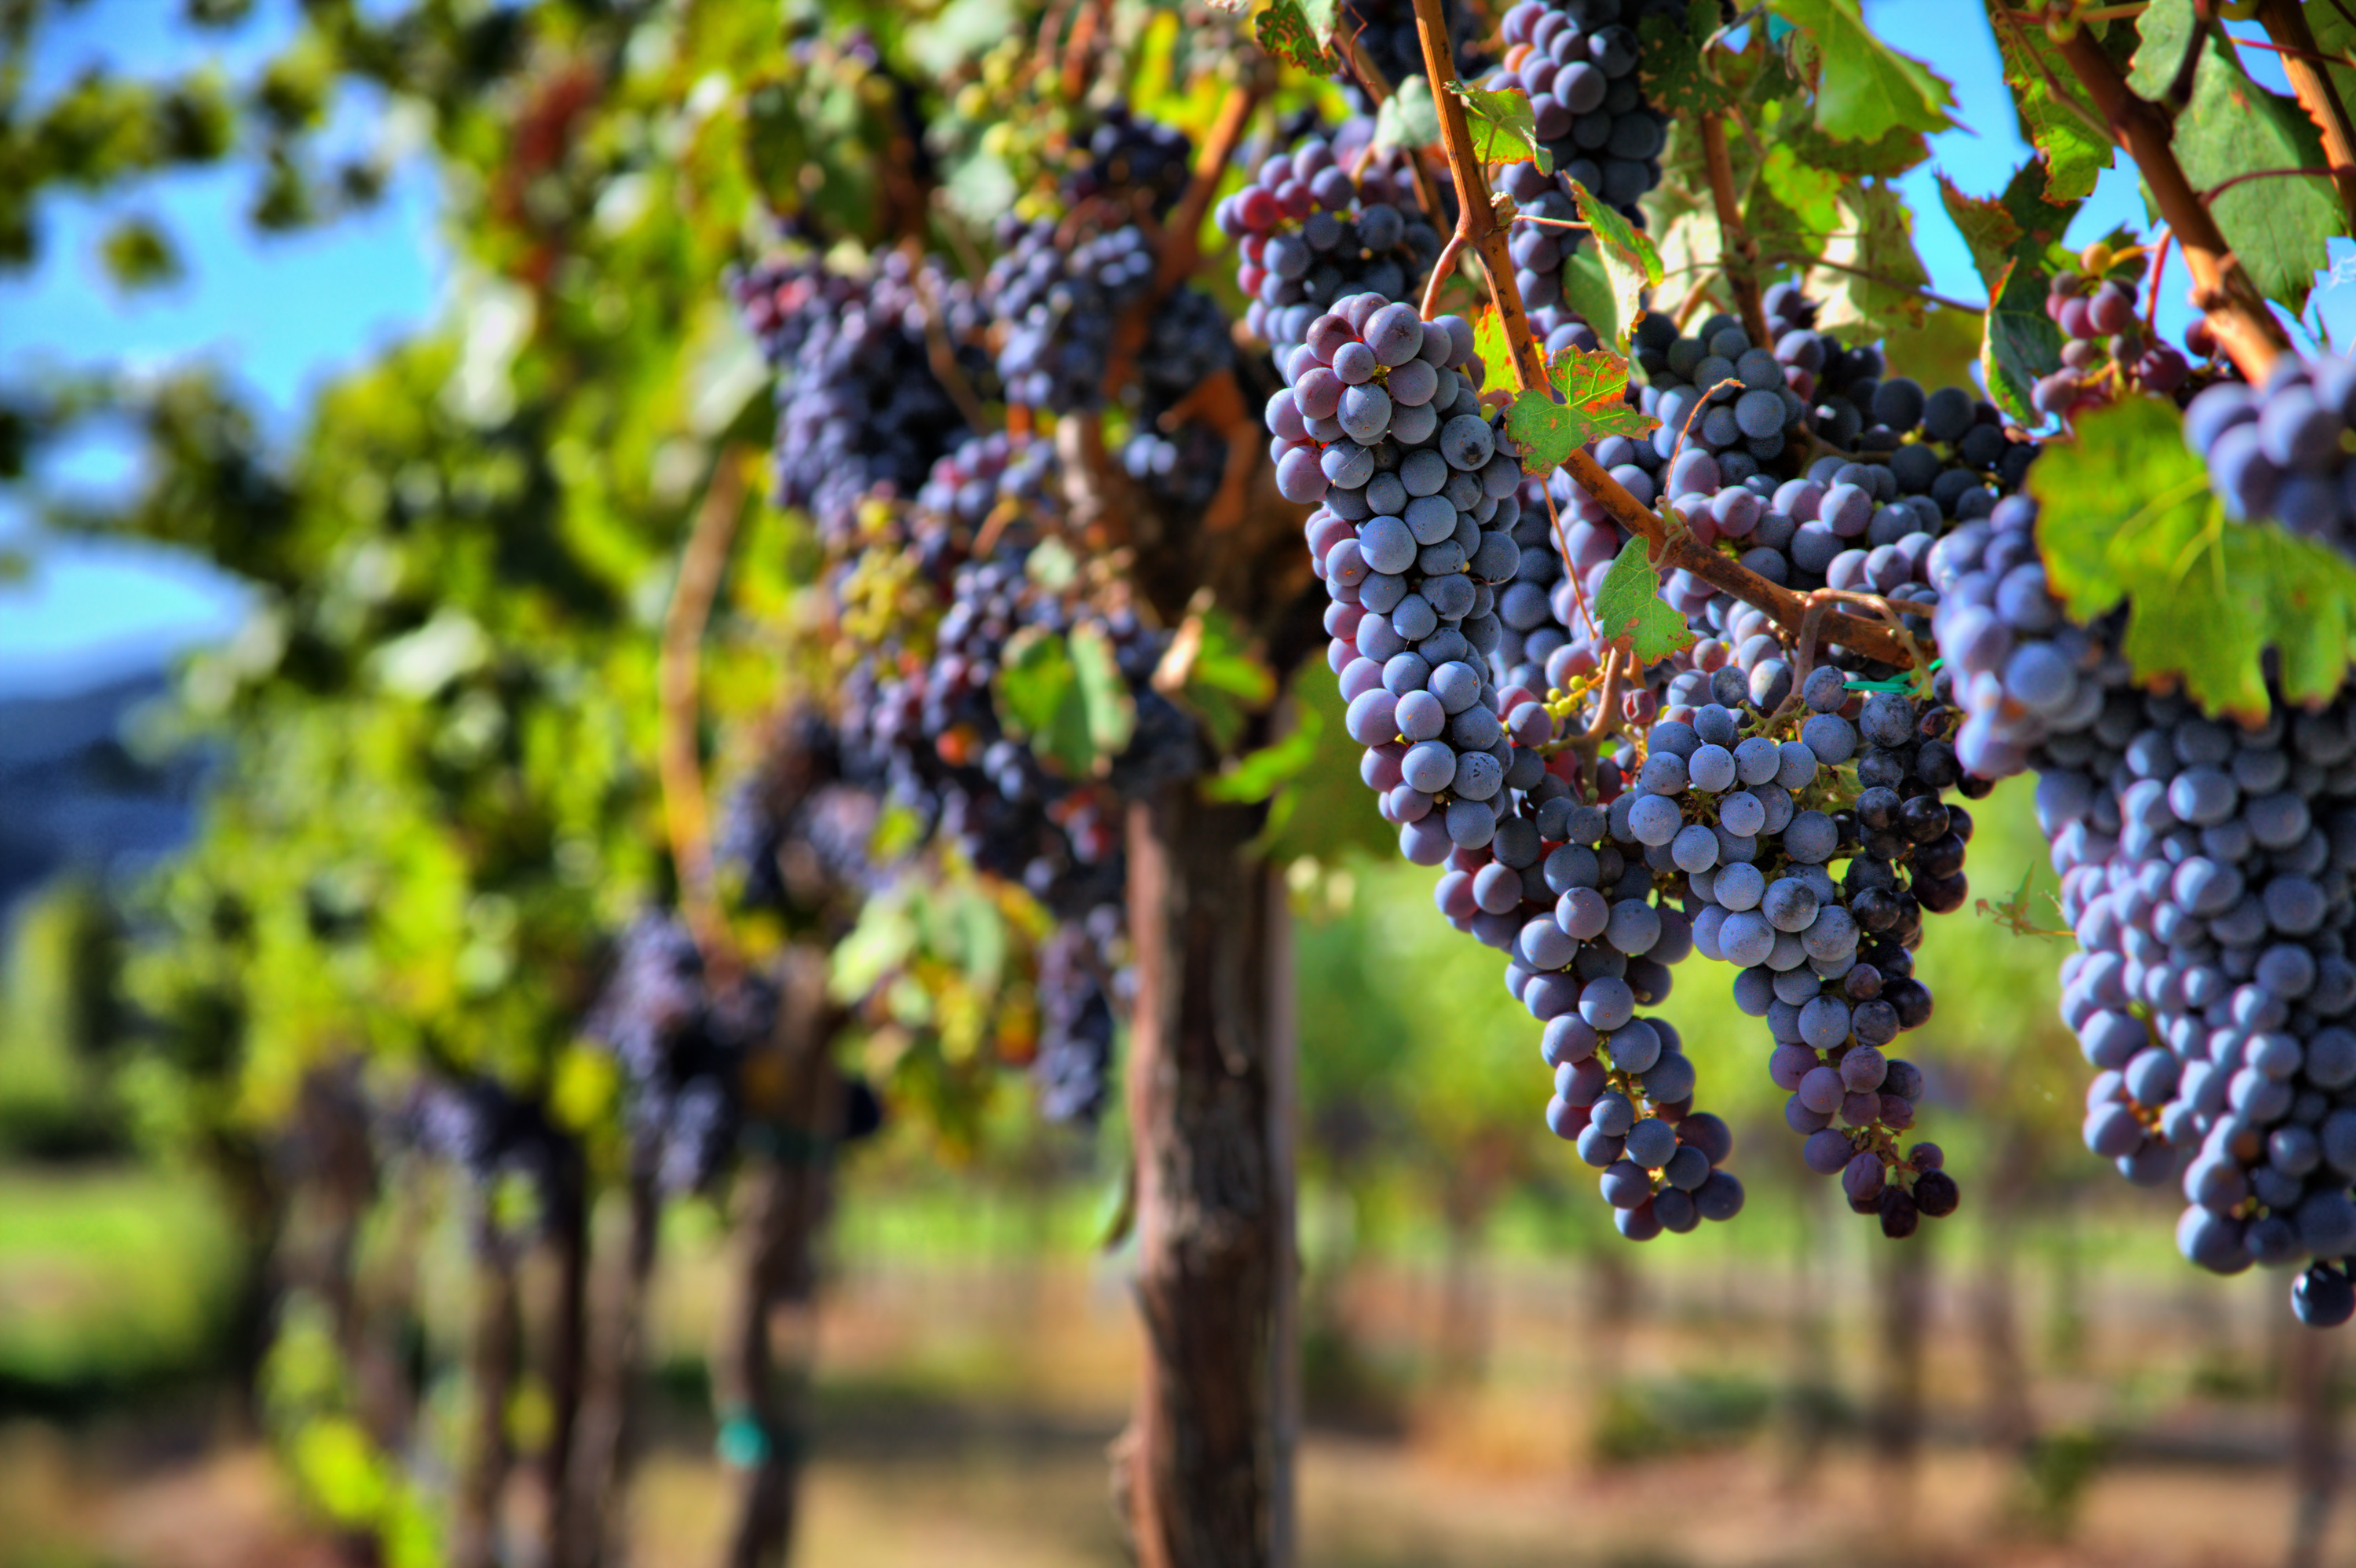 Vineyard Operators Rely on Environmental Monitoring to Keep Grapes Healthy